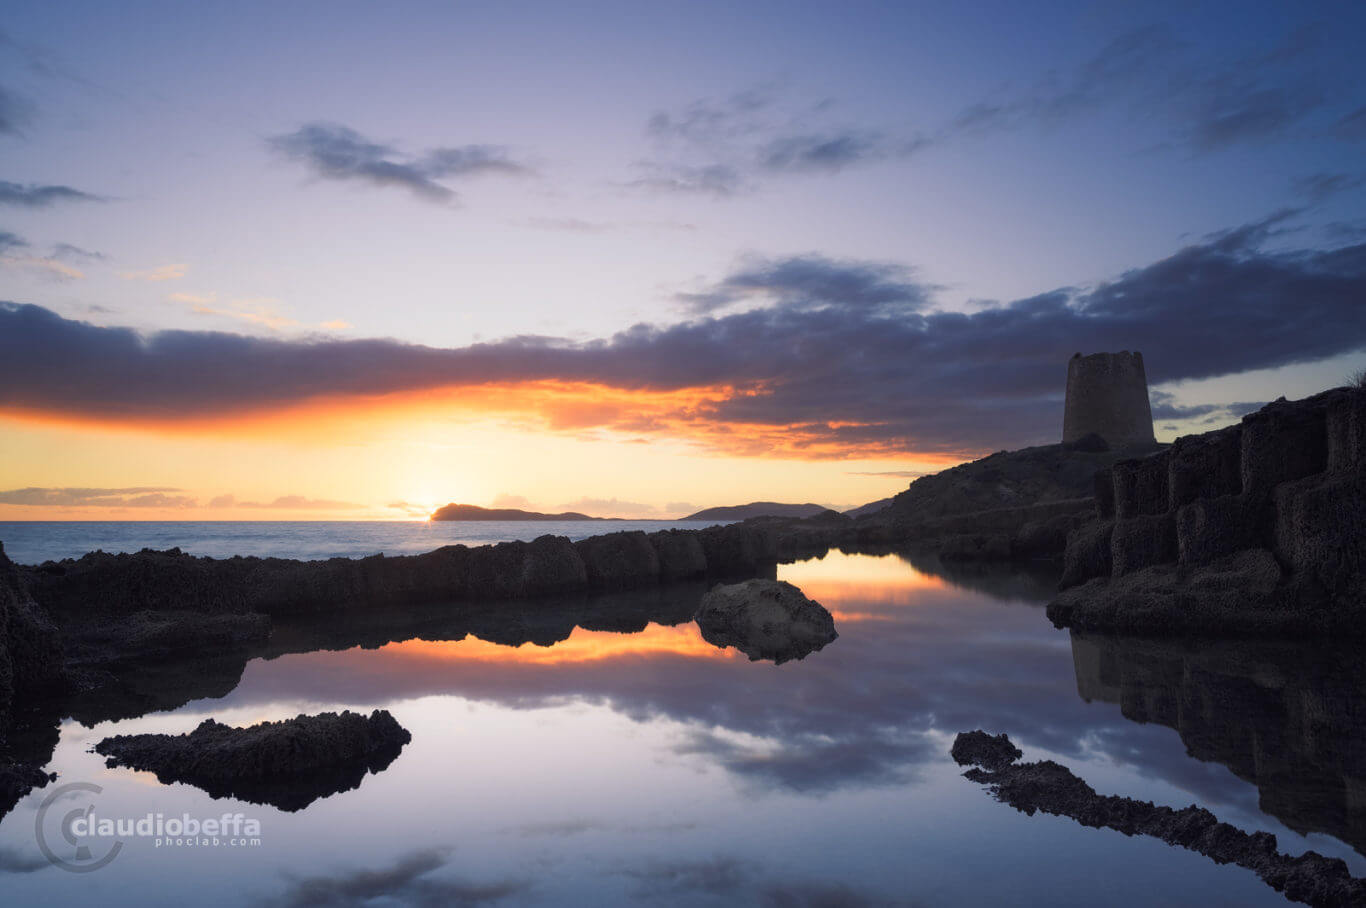 Sunset, Seascape, Sea, Pond, Quarry, Punic, Reflection, Guard tower, Sky, Clouds, Sardinia, Italy, Punic pool